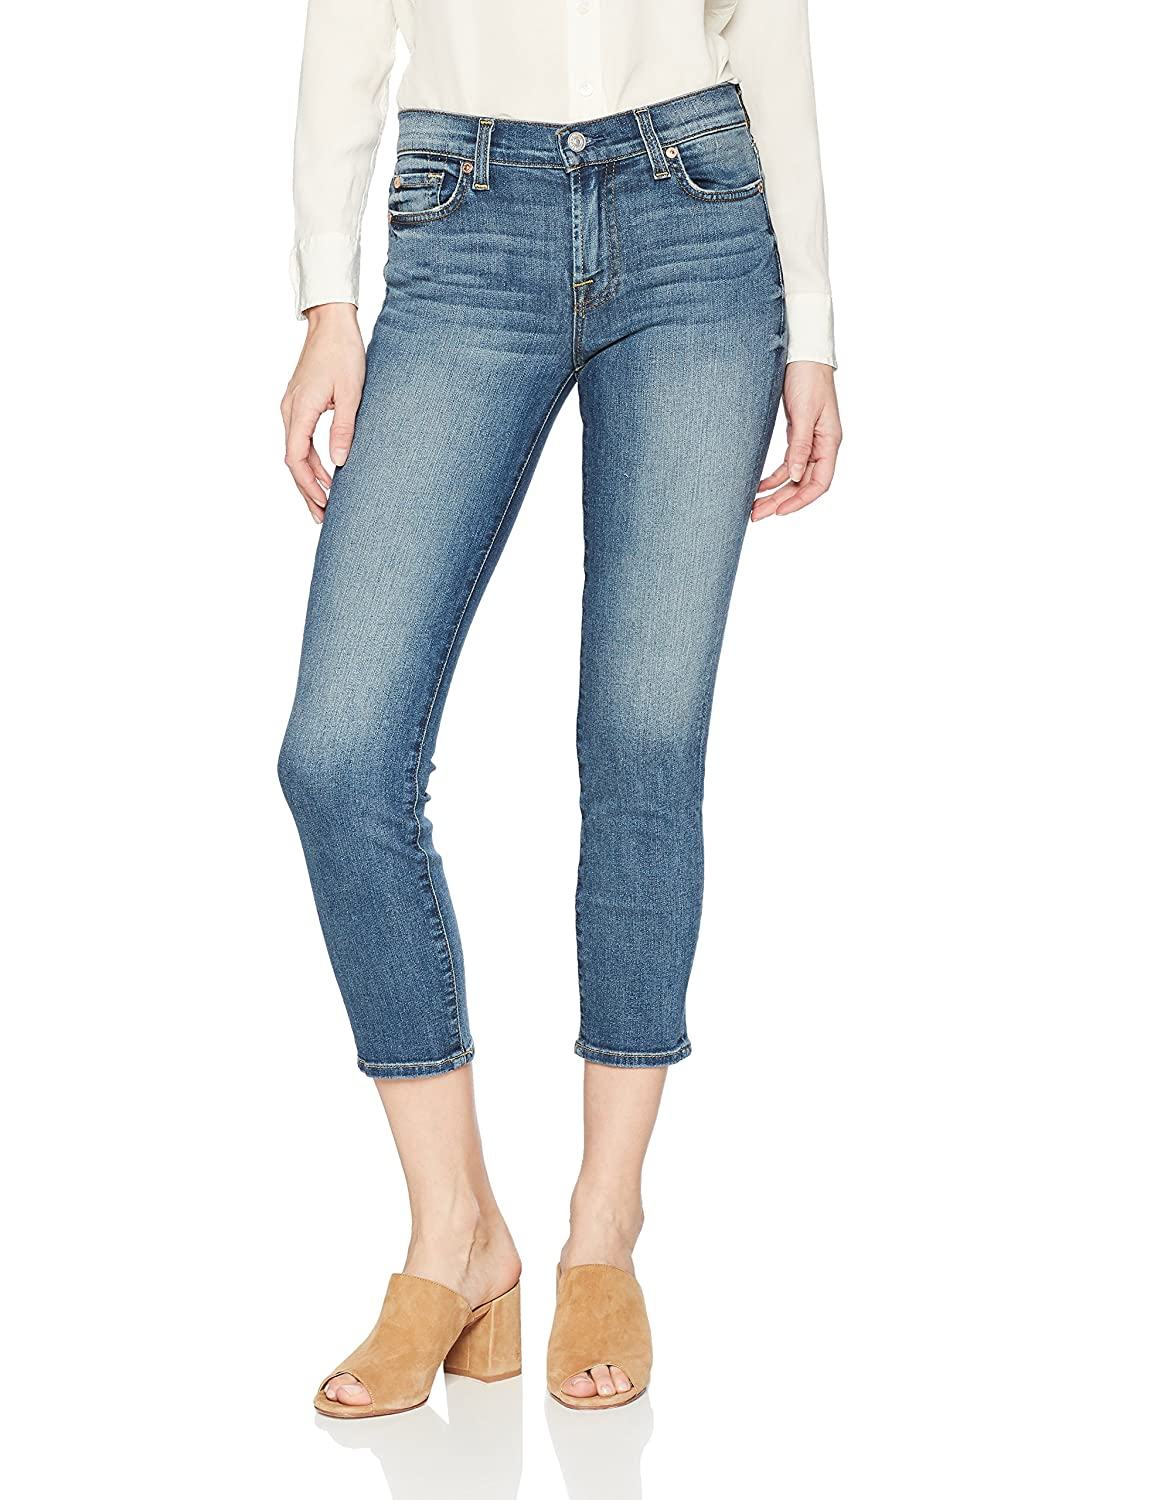 72eedf91b7b Amazon.com: 7 For All Mankind Women's Roxanne Ankle Jean: Clothing